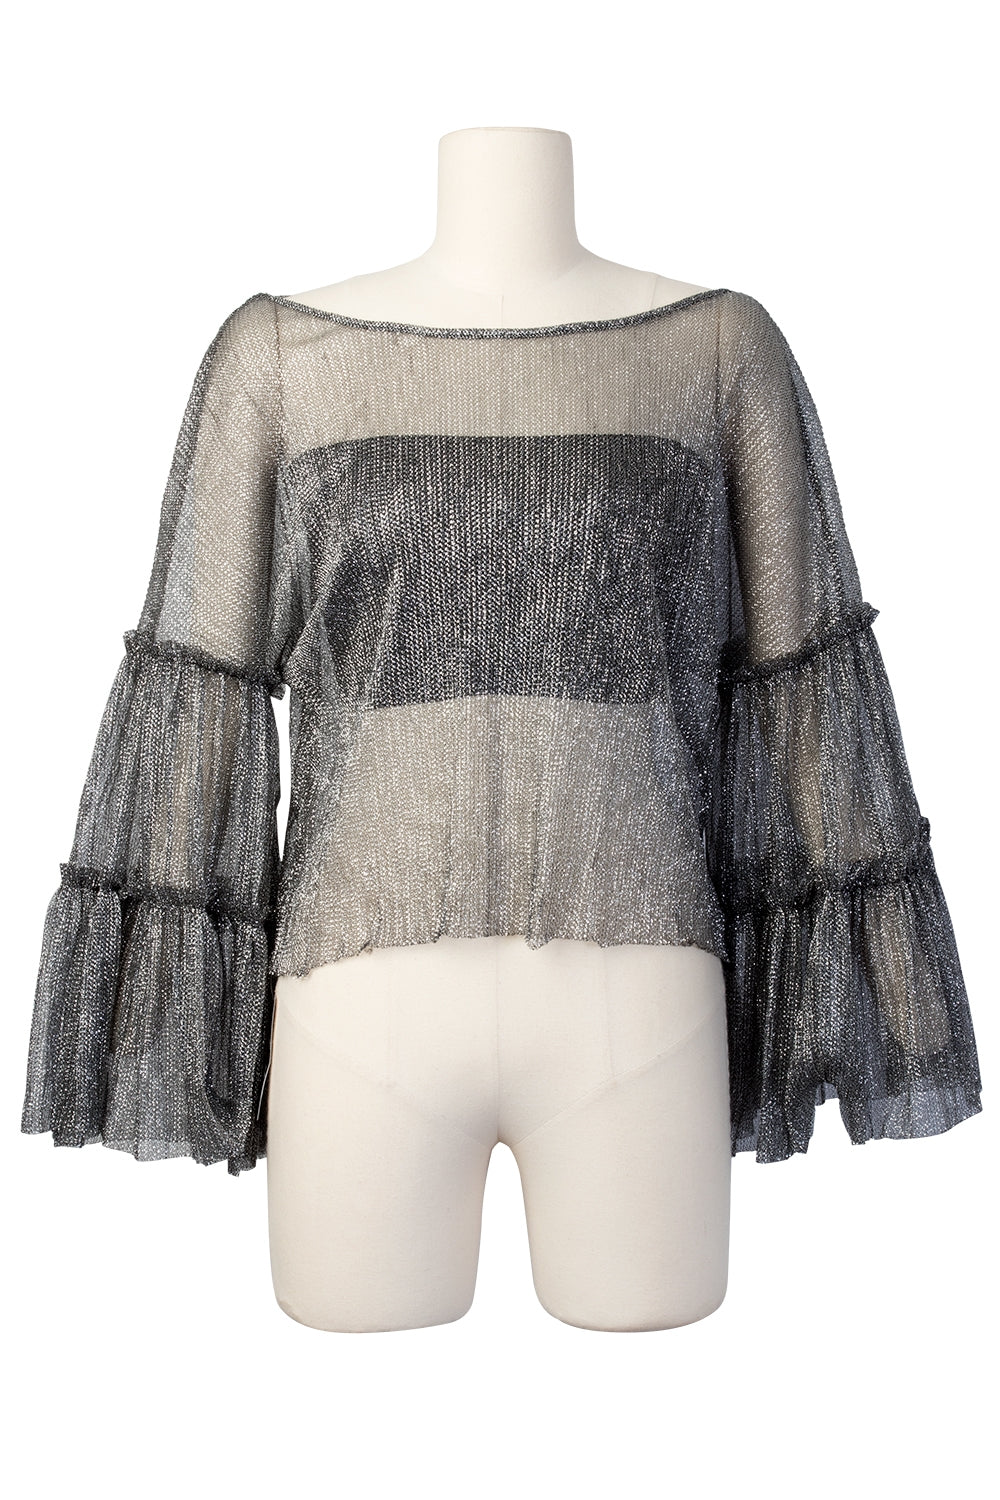 Kate Shine Wide Sleeves Mesh Top